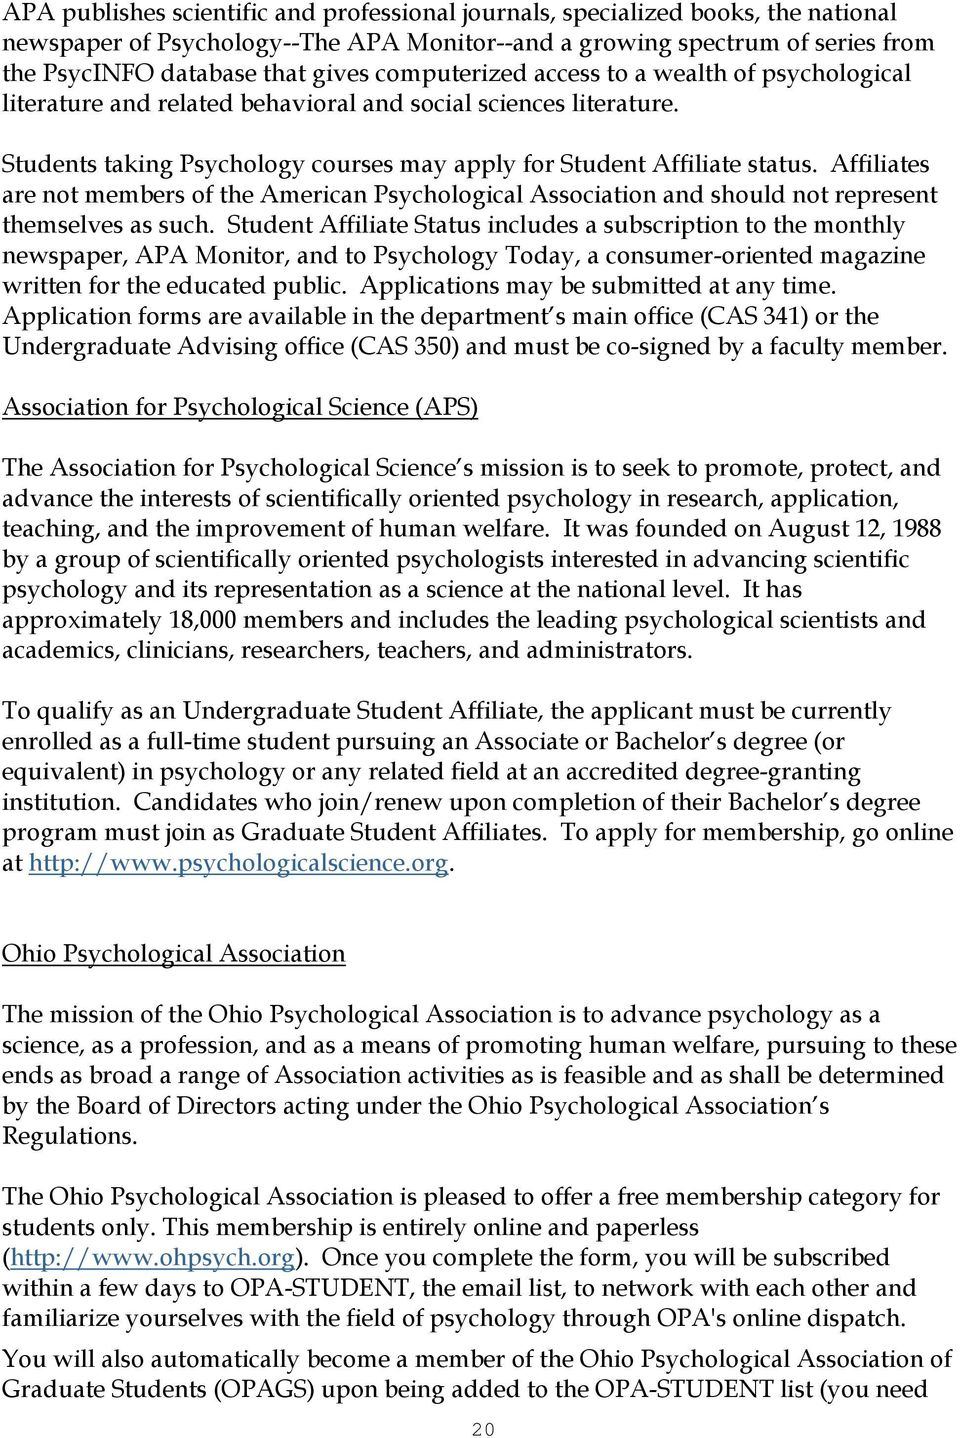 Affiliates are not members of the American Psychological Association and should not represent themselves as such.